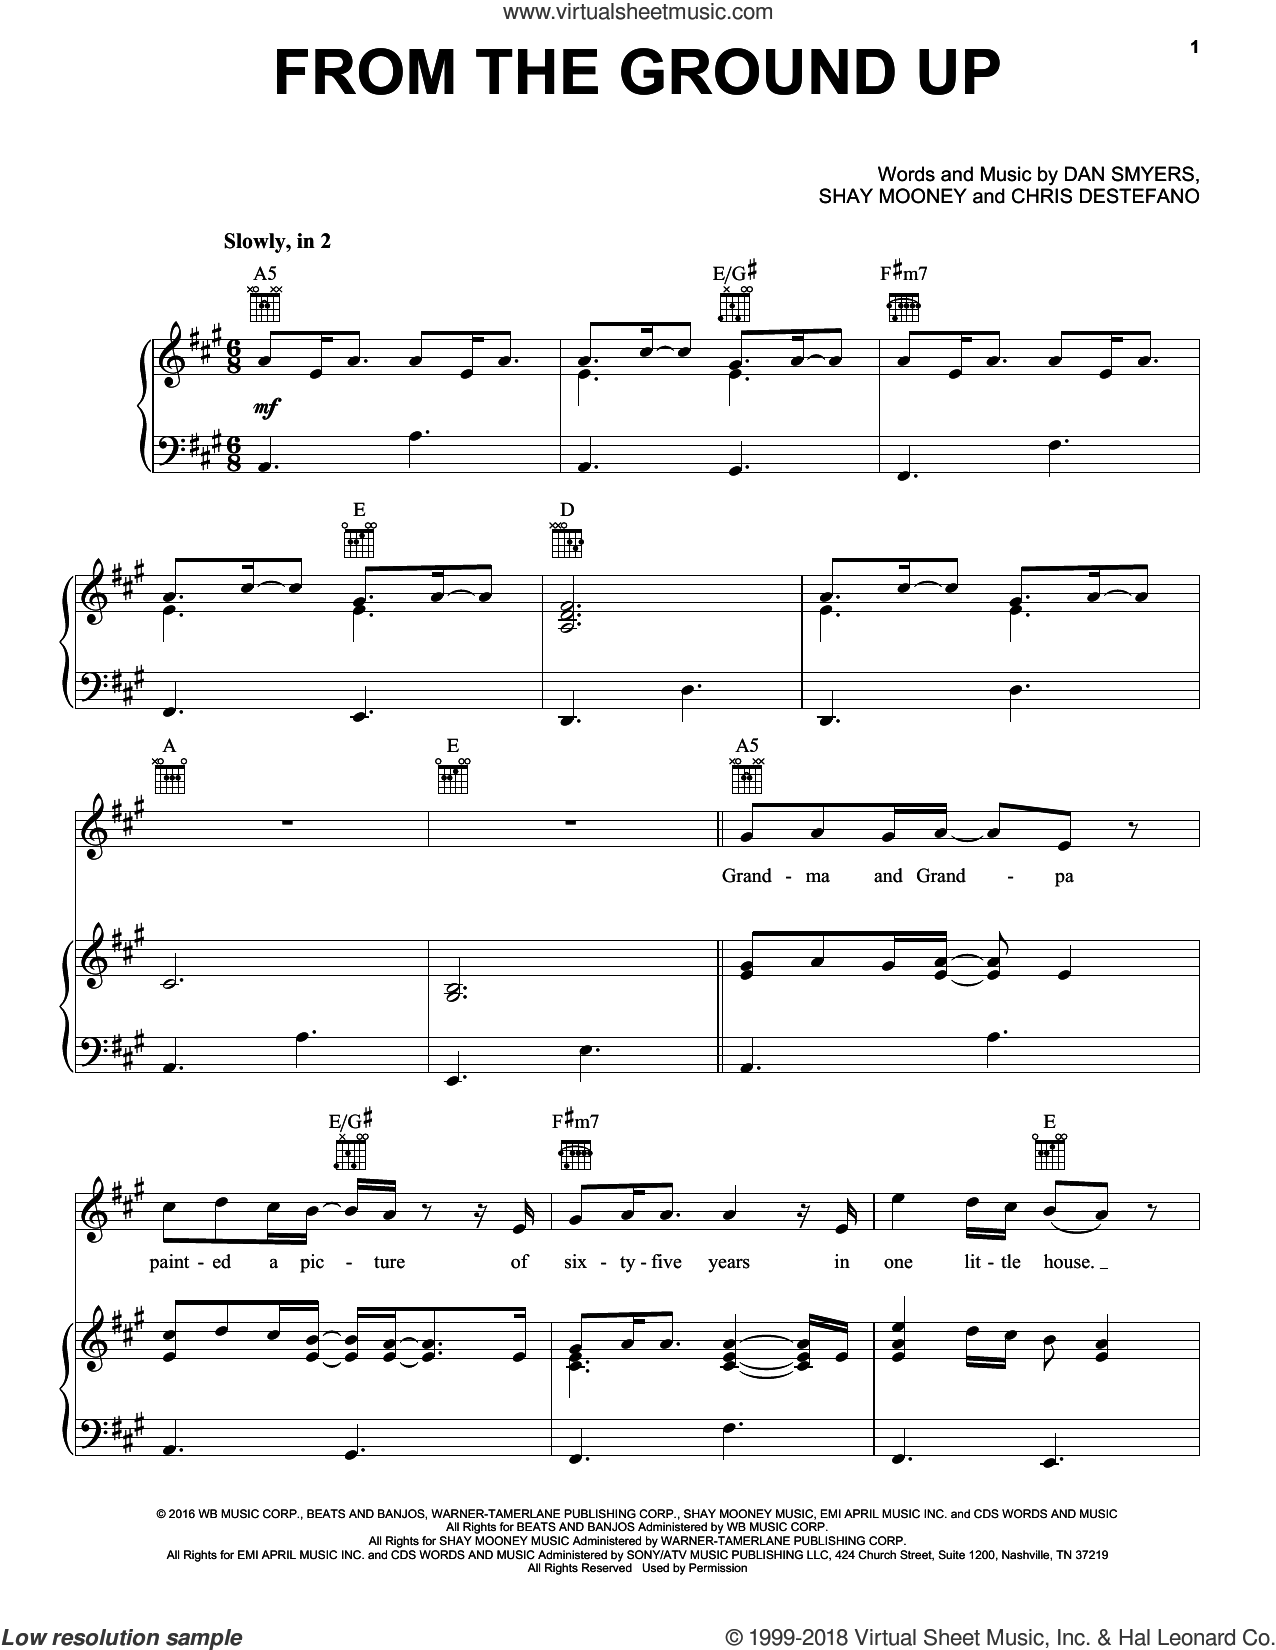 From The Ground Up sheet music for voice, piano or guitar by Dan & Shay, Chris Destefano, Dan Smyers and Shay Mooney, intermediate voice, piano or guitar. Score Image Preview.